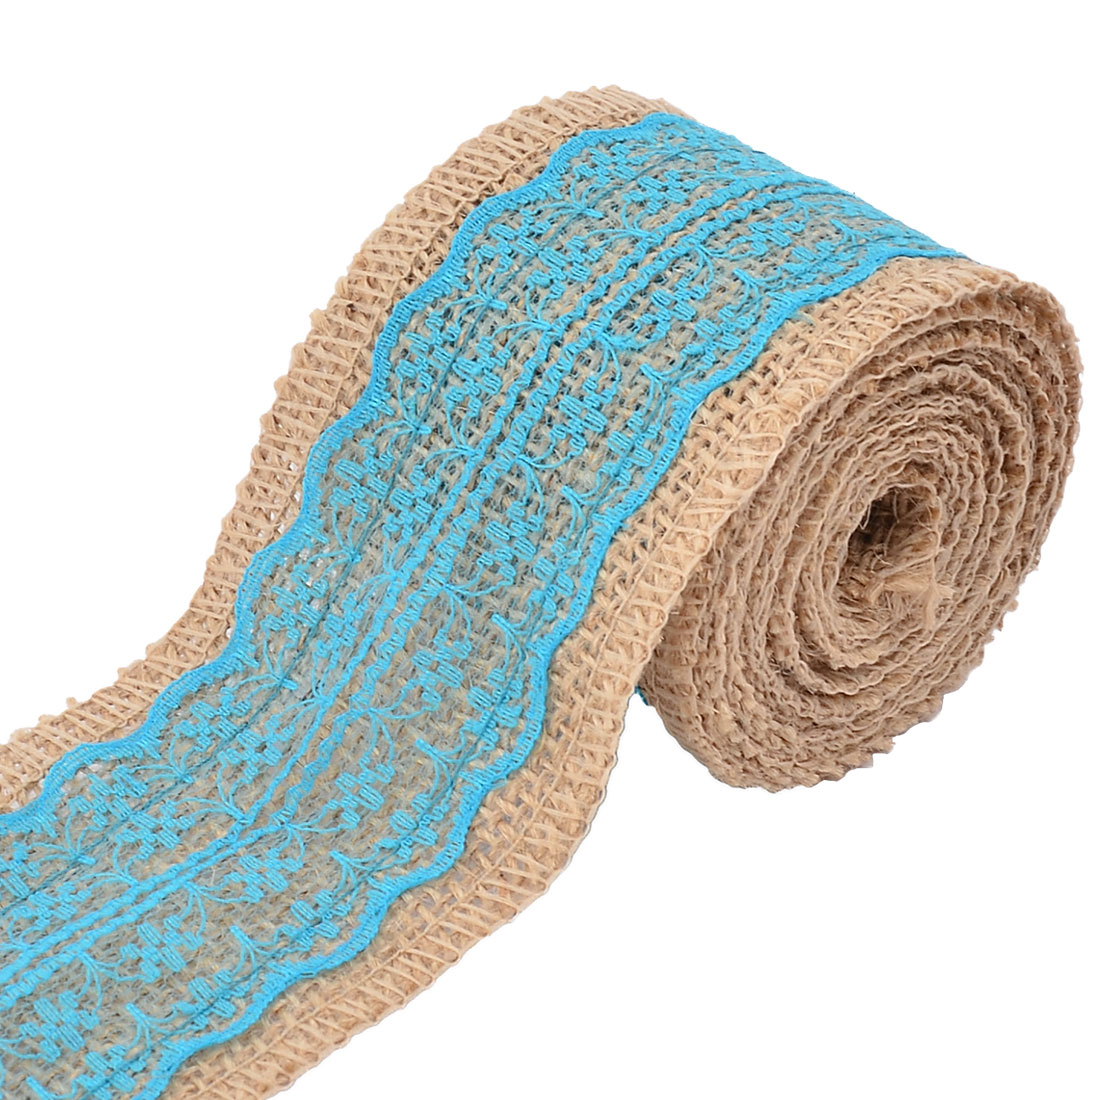 Household Party Lace Edge Ornament Craft Burlap Ribbon Strap Roll Blue 2.2 Yards